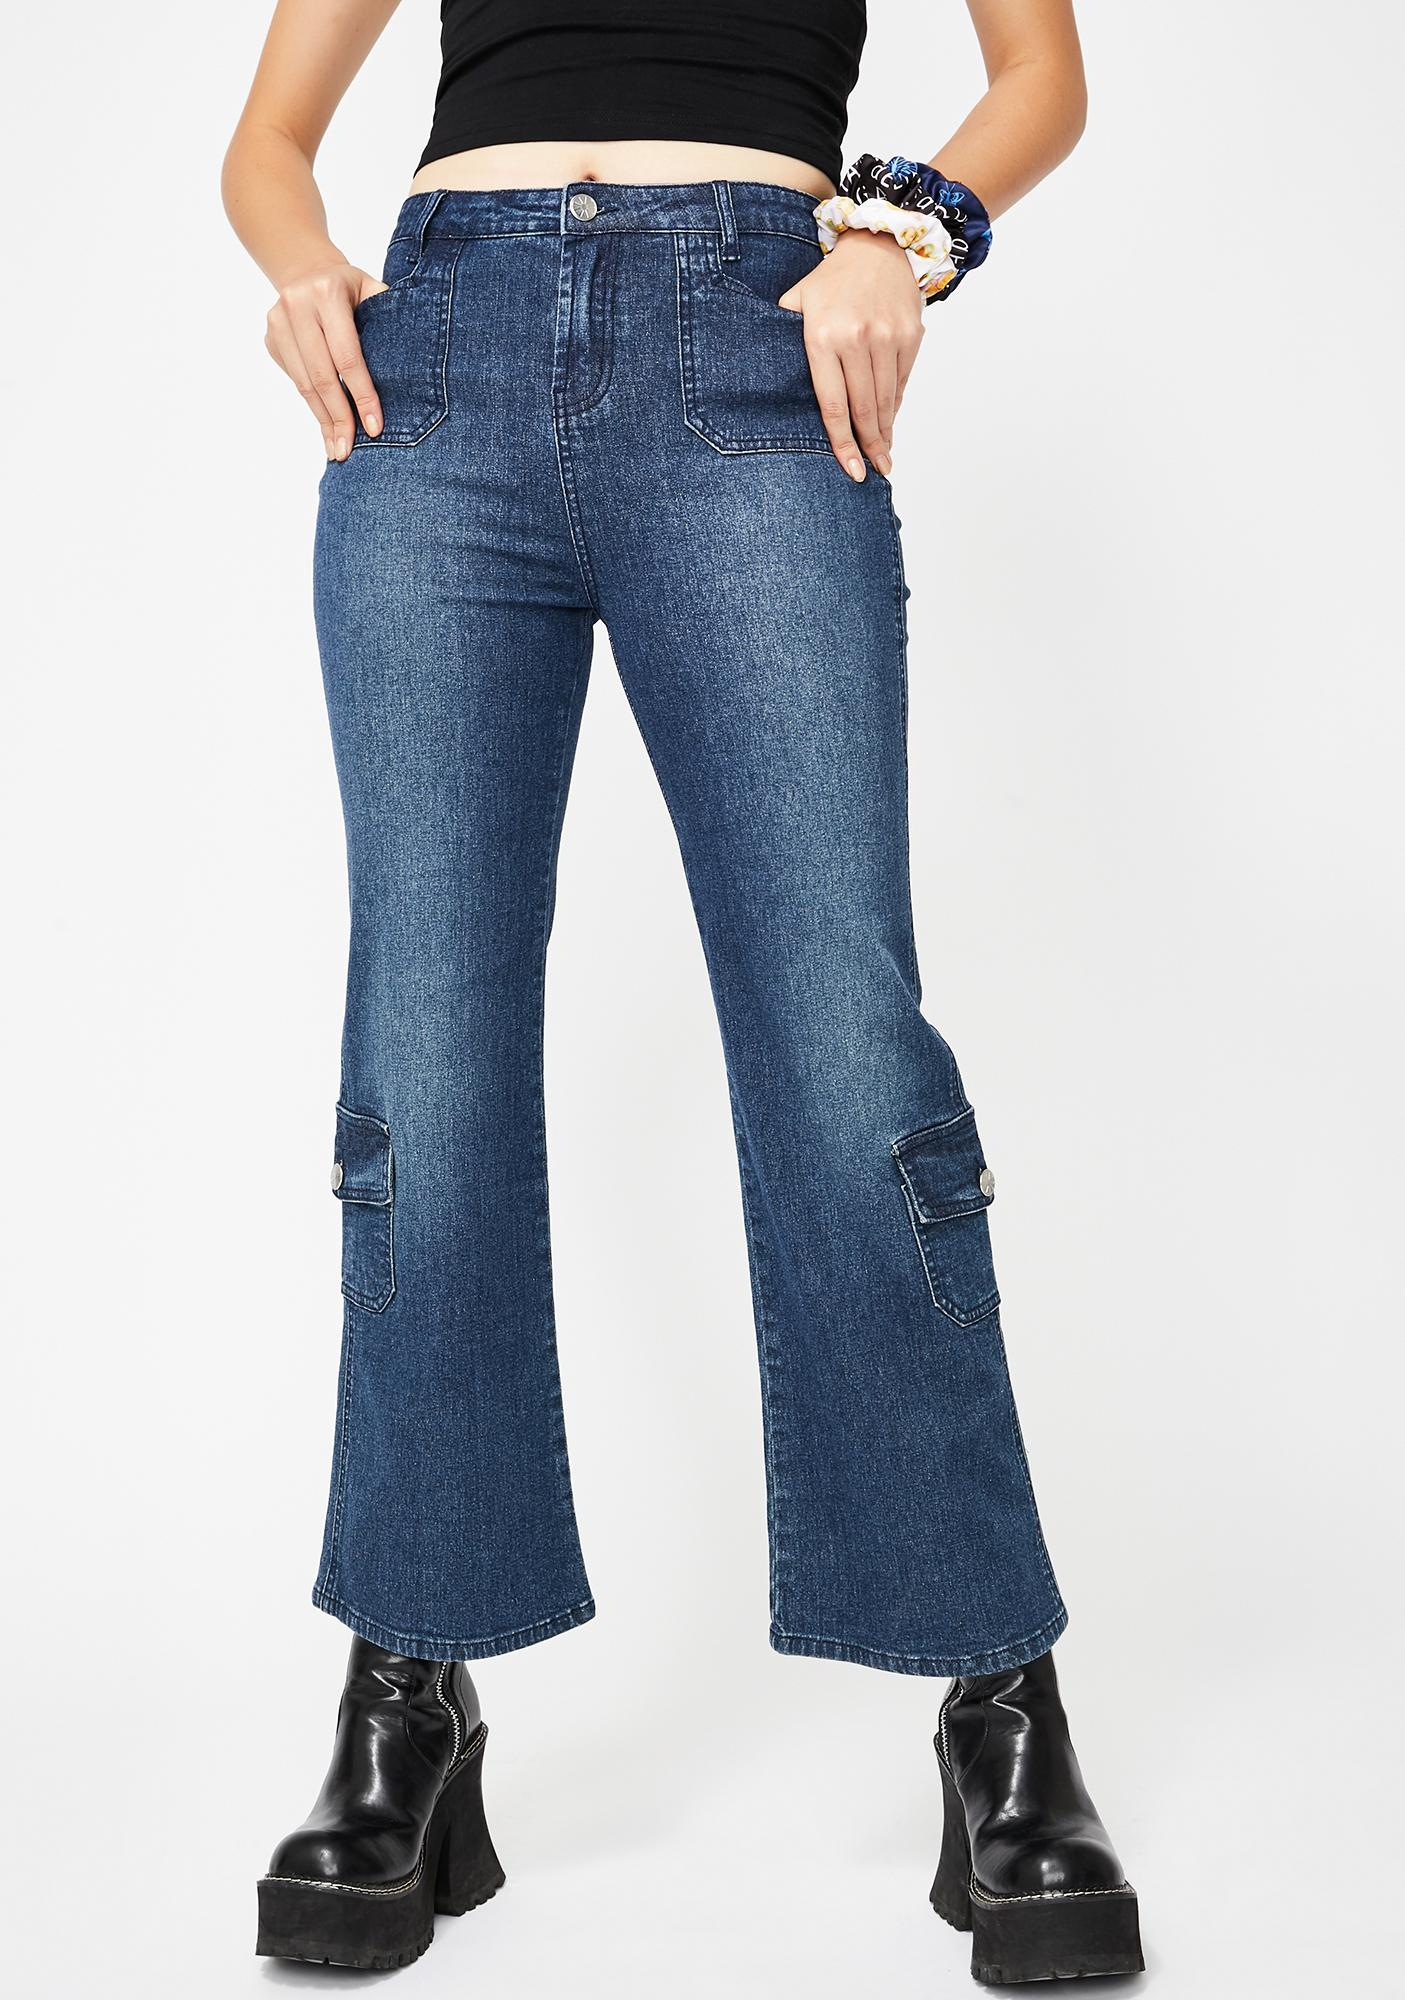 dELiA*s by Dolls Kill A Sure Thing Crop Jeans